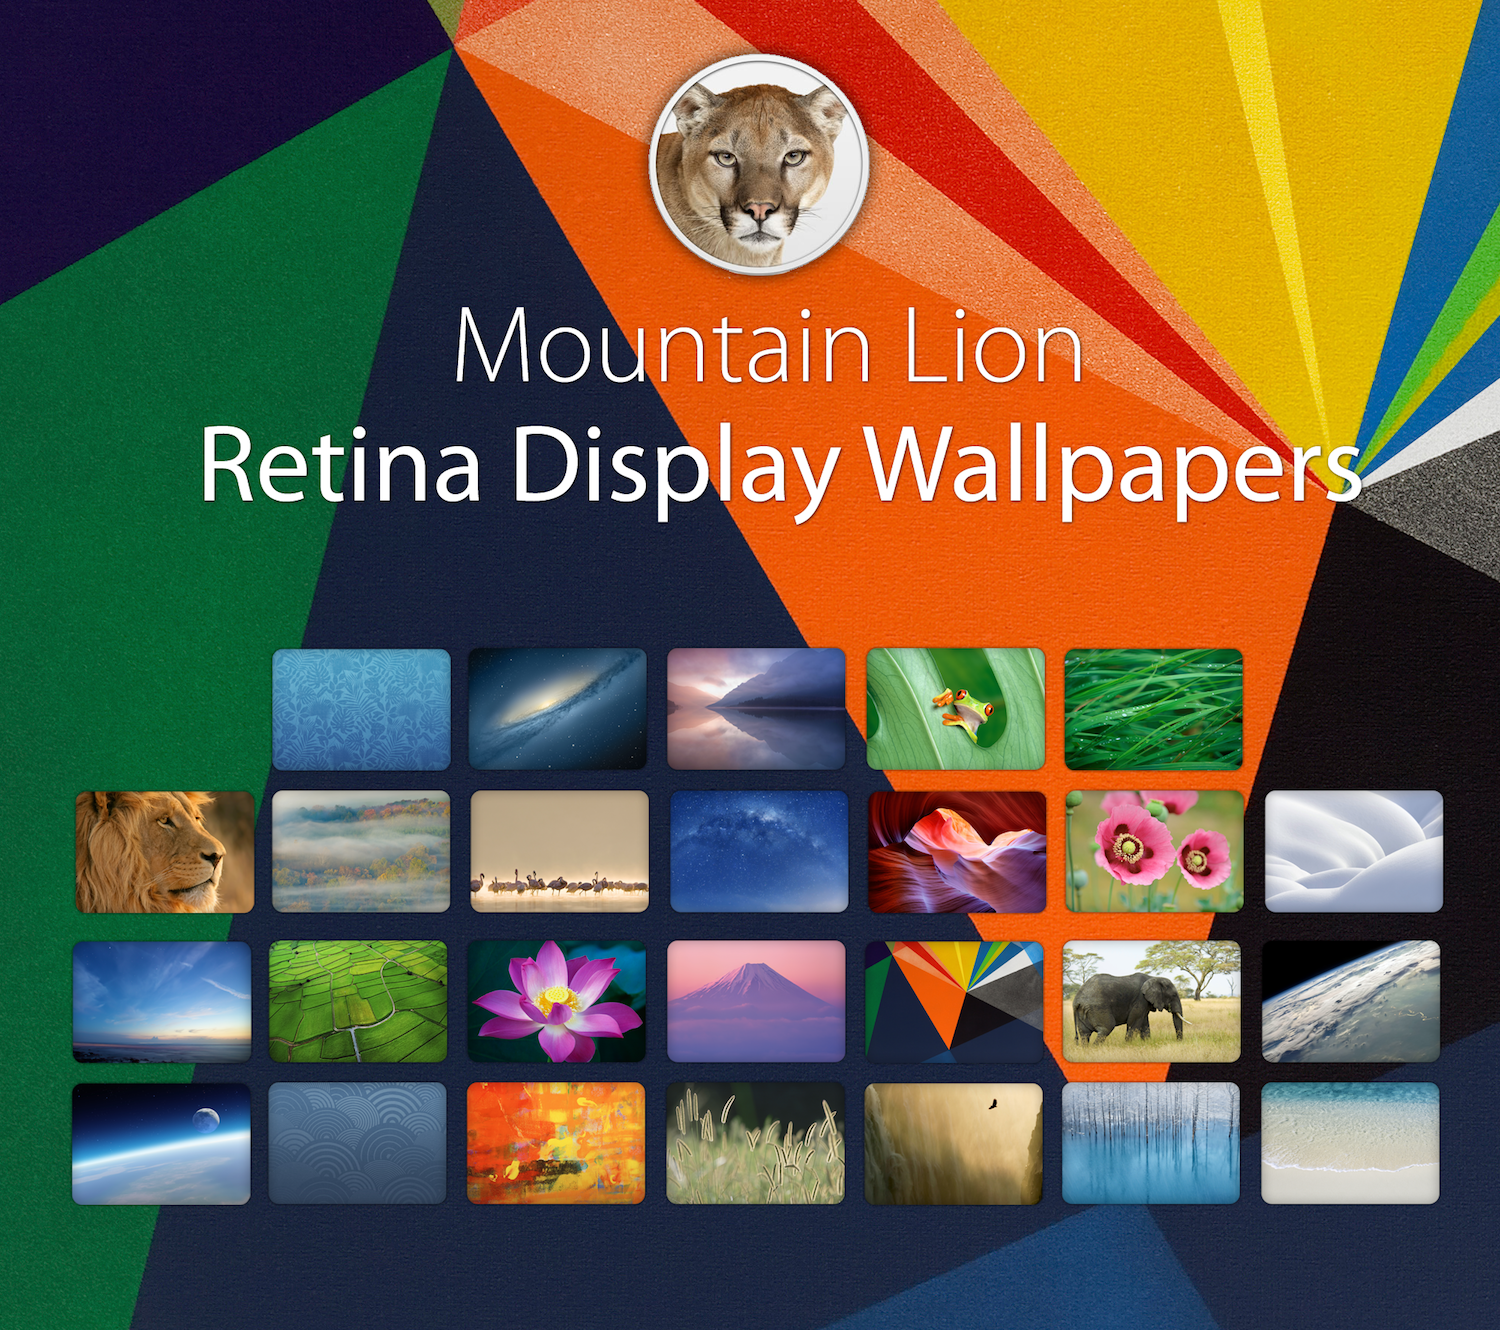 Mountain Lion Retina Display Wallpapers By City17 On Deviantart